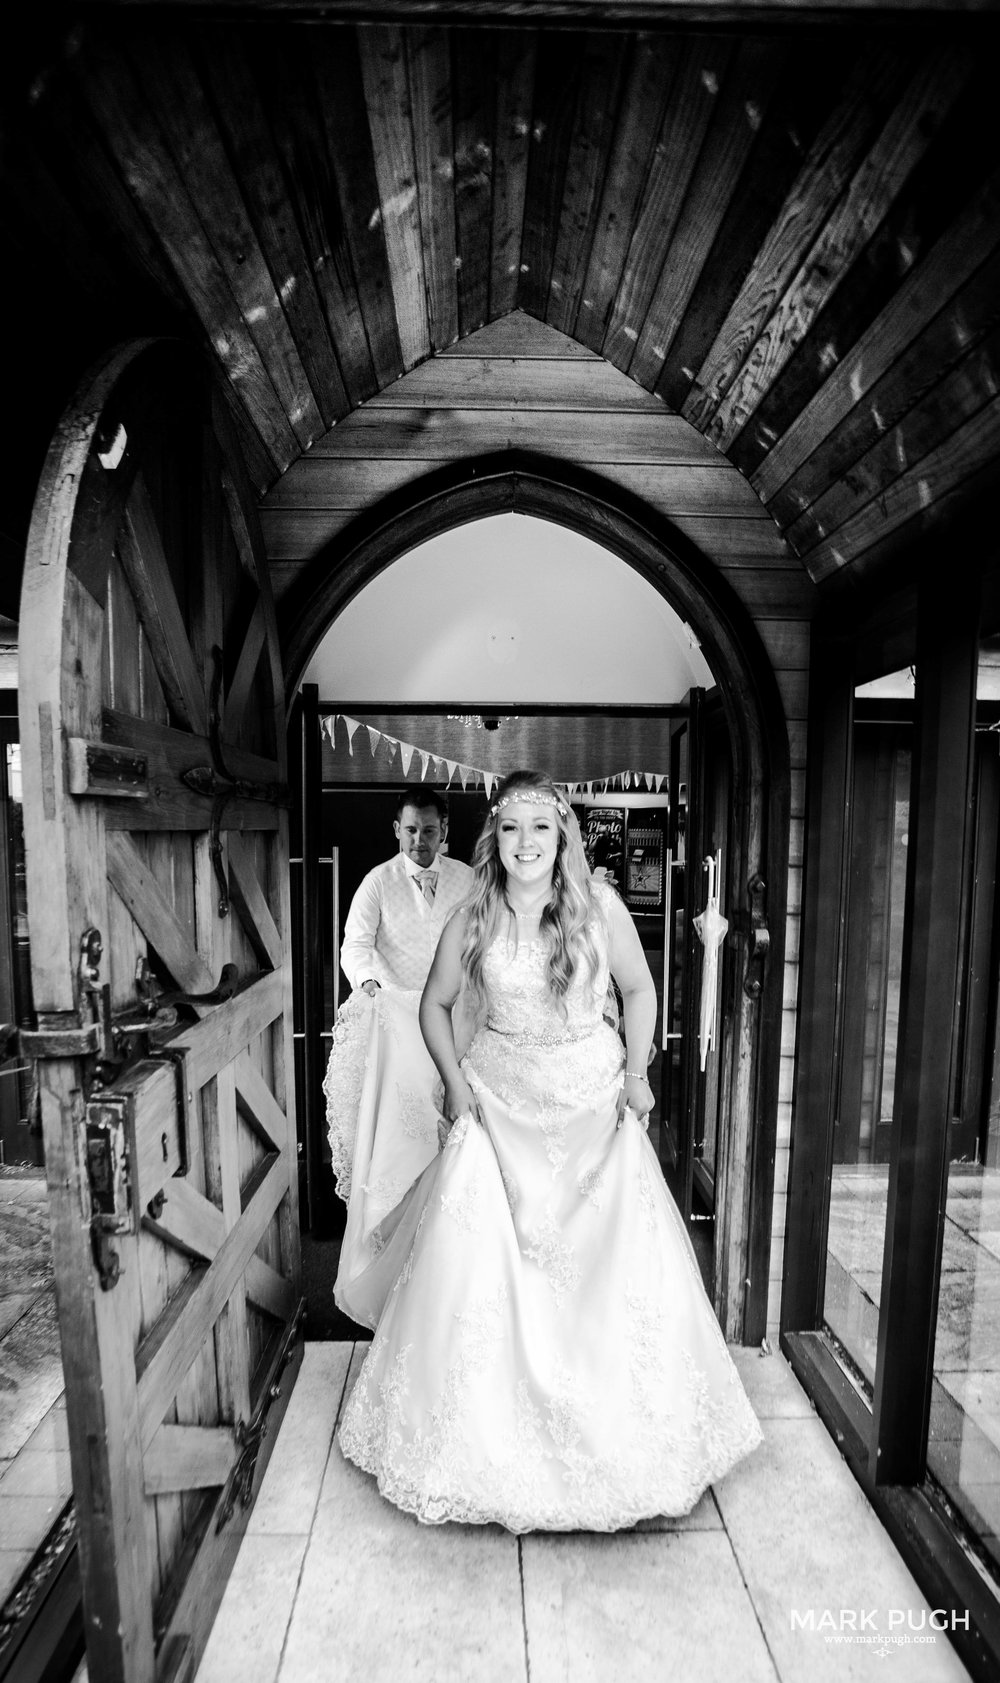 103 - Lucy and Tim - fineART wedding photography featuring the Goosedale Conference and Banqueting venue NG6 8UJ by www.markpugh.com Mark Pugh of www.mpmedia.co.uk_.JPG